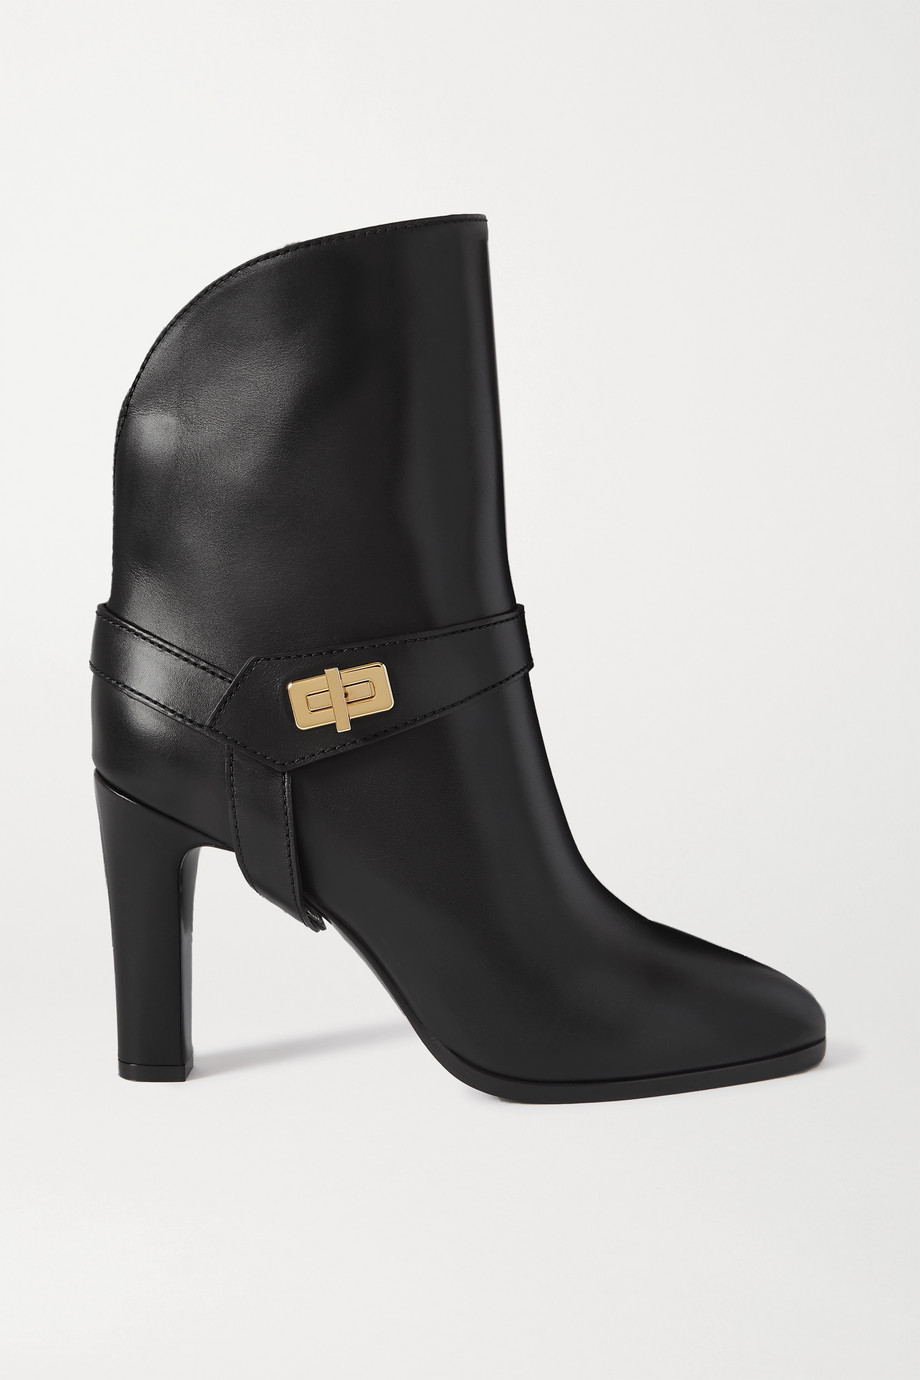 Givenchy Bottines en cuir Eden